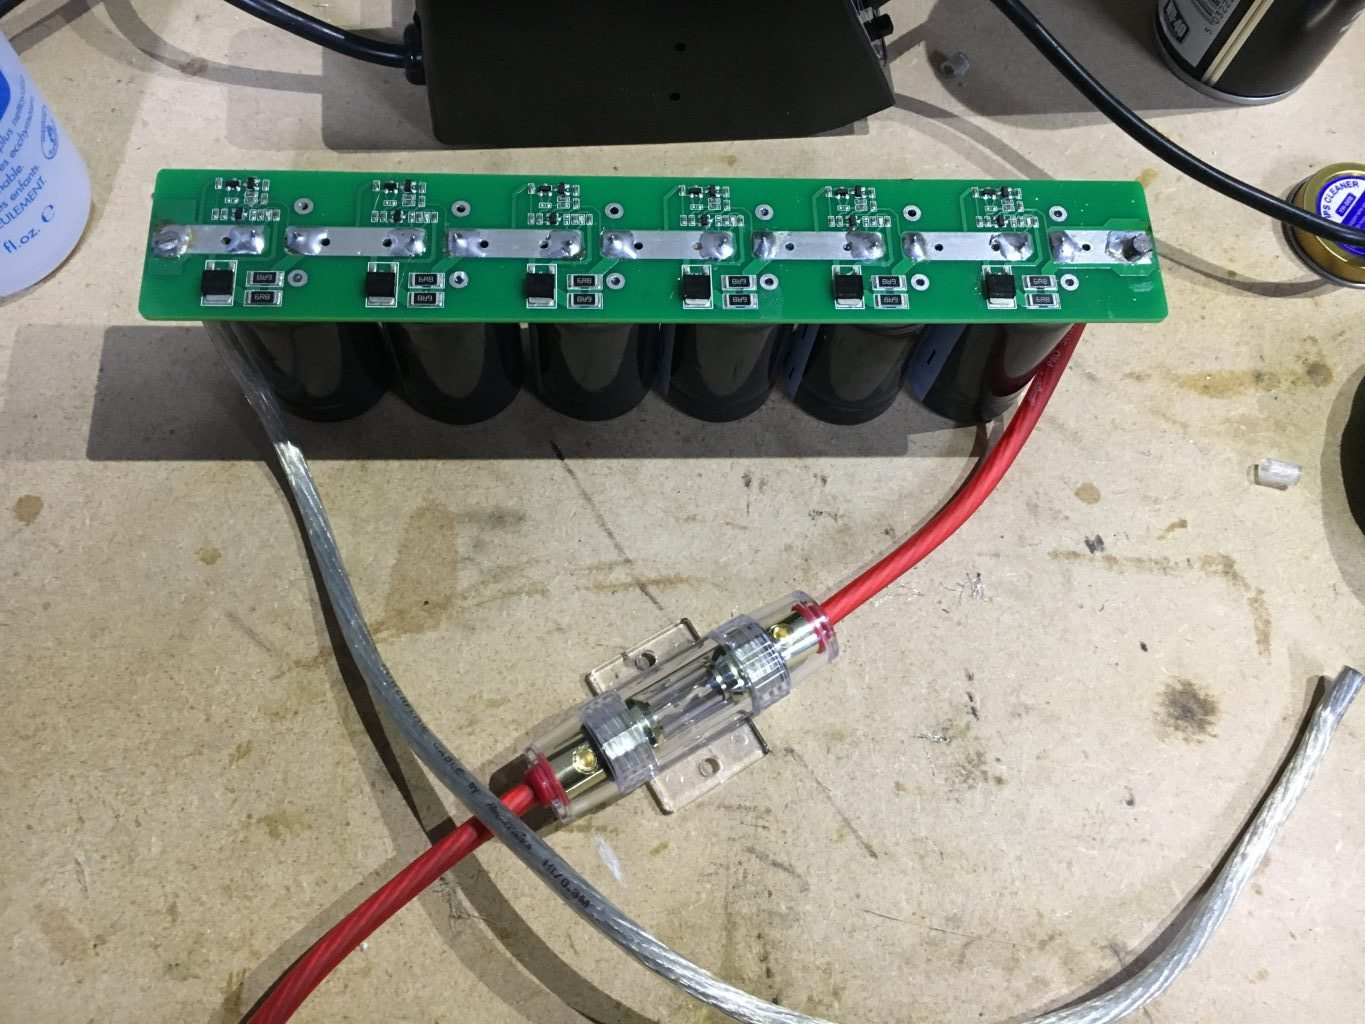 Supercapacitor Car Audio Wiring Library Home Network Using Electrical On Popscreen It Took Some Real Heat The Iron To Get Solder Flowing Especially Soldering